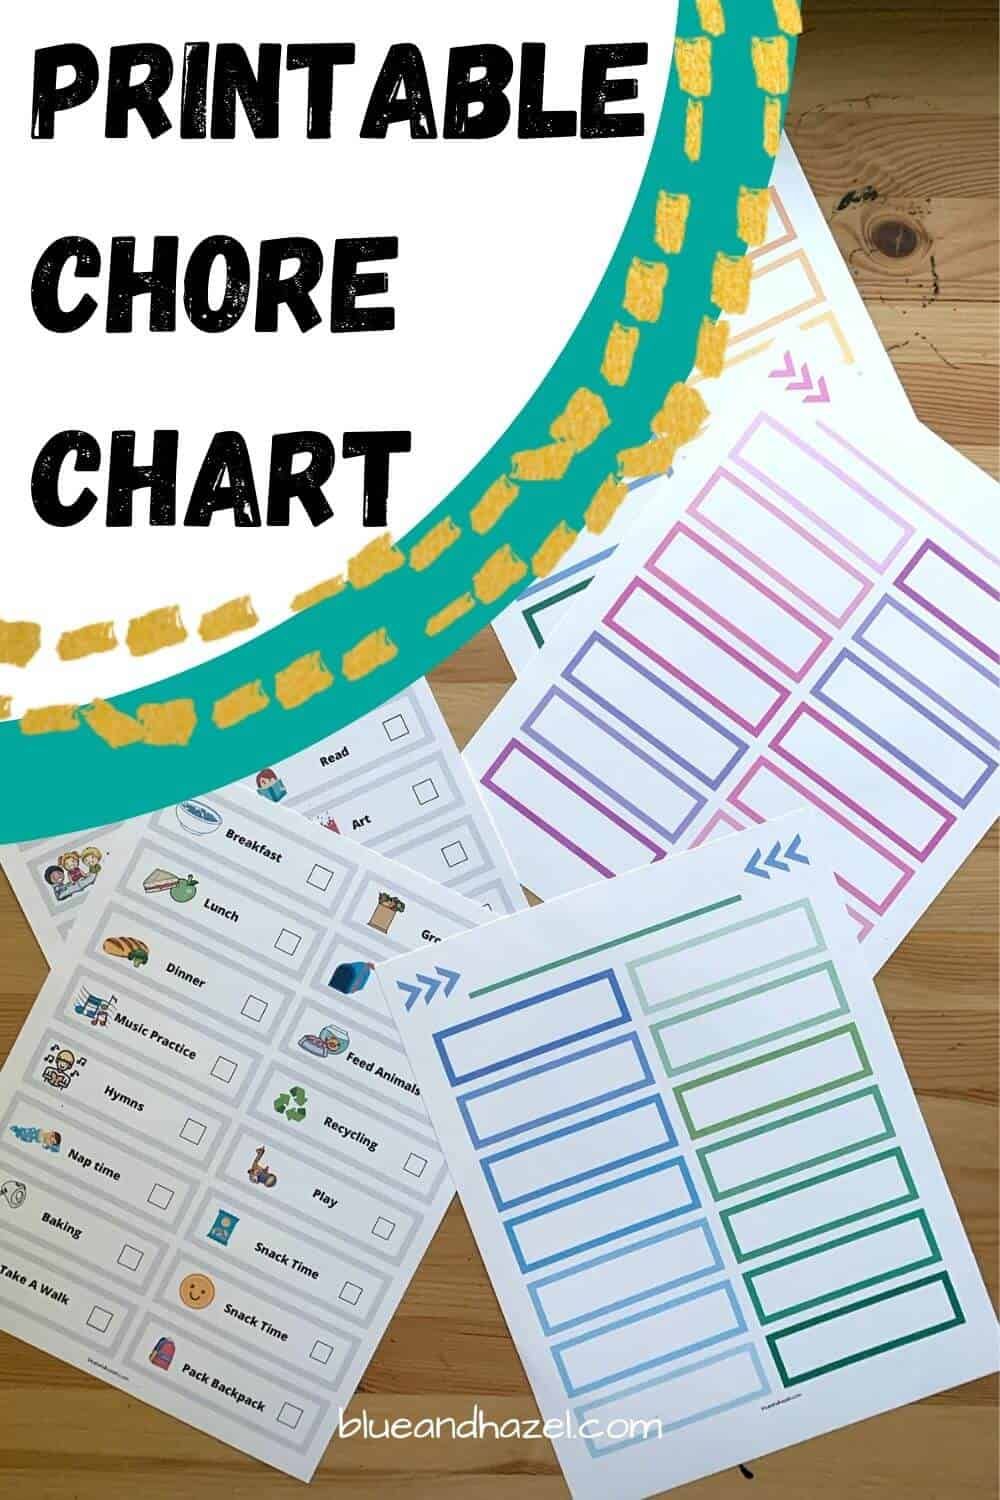 Printable preschool routine/chore chart for kids with pictures! Includes blue, pink, and rainbow templates.